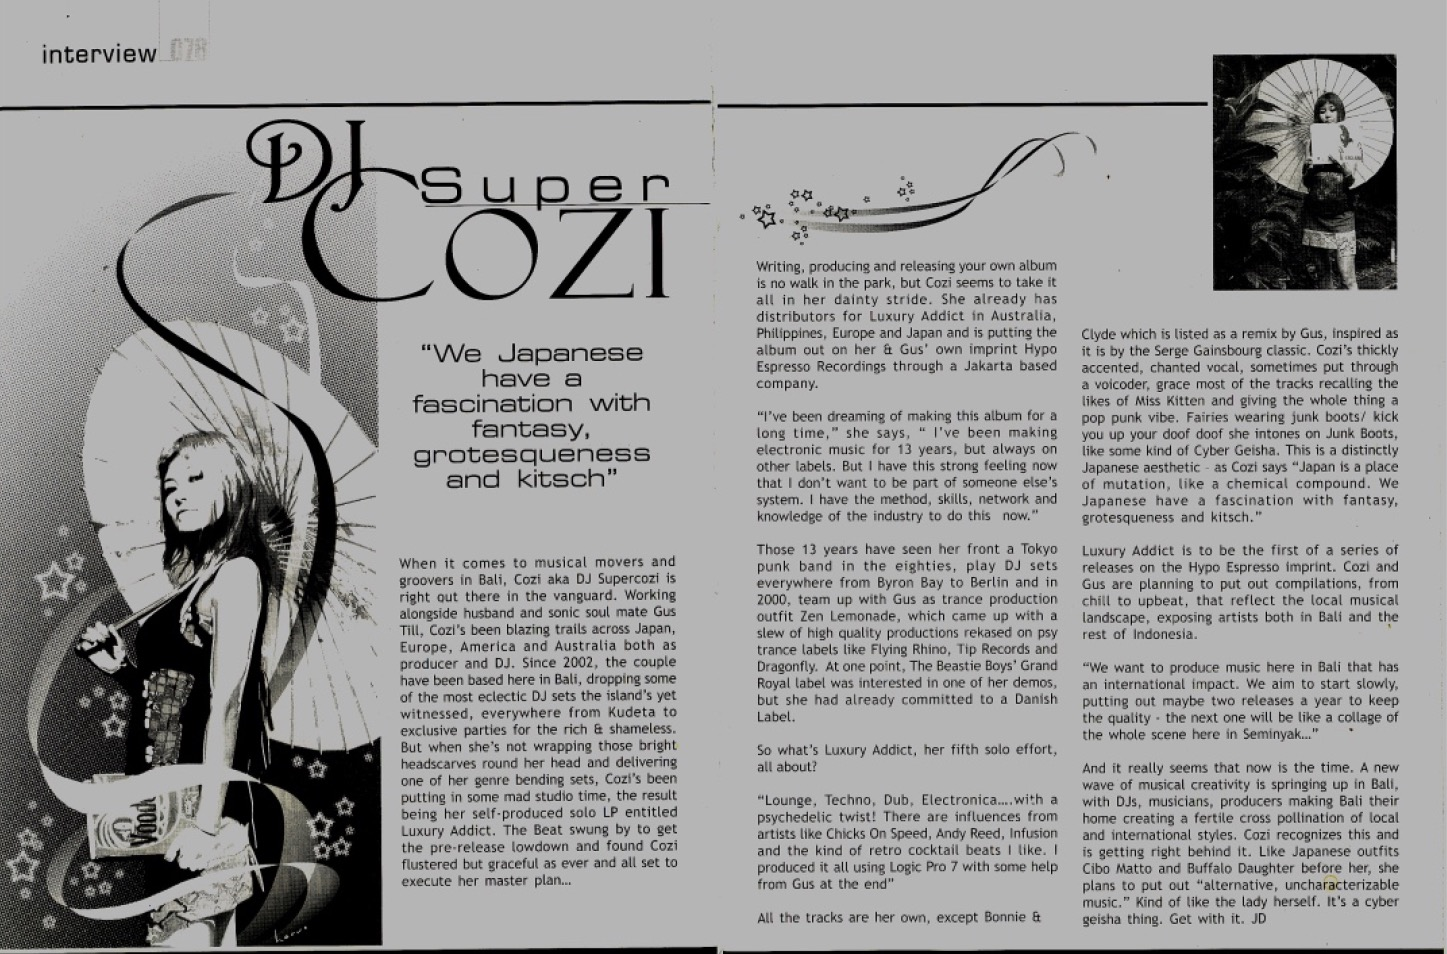 Supercozi interview the beat magazine Bali / 2005 July 15